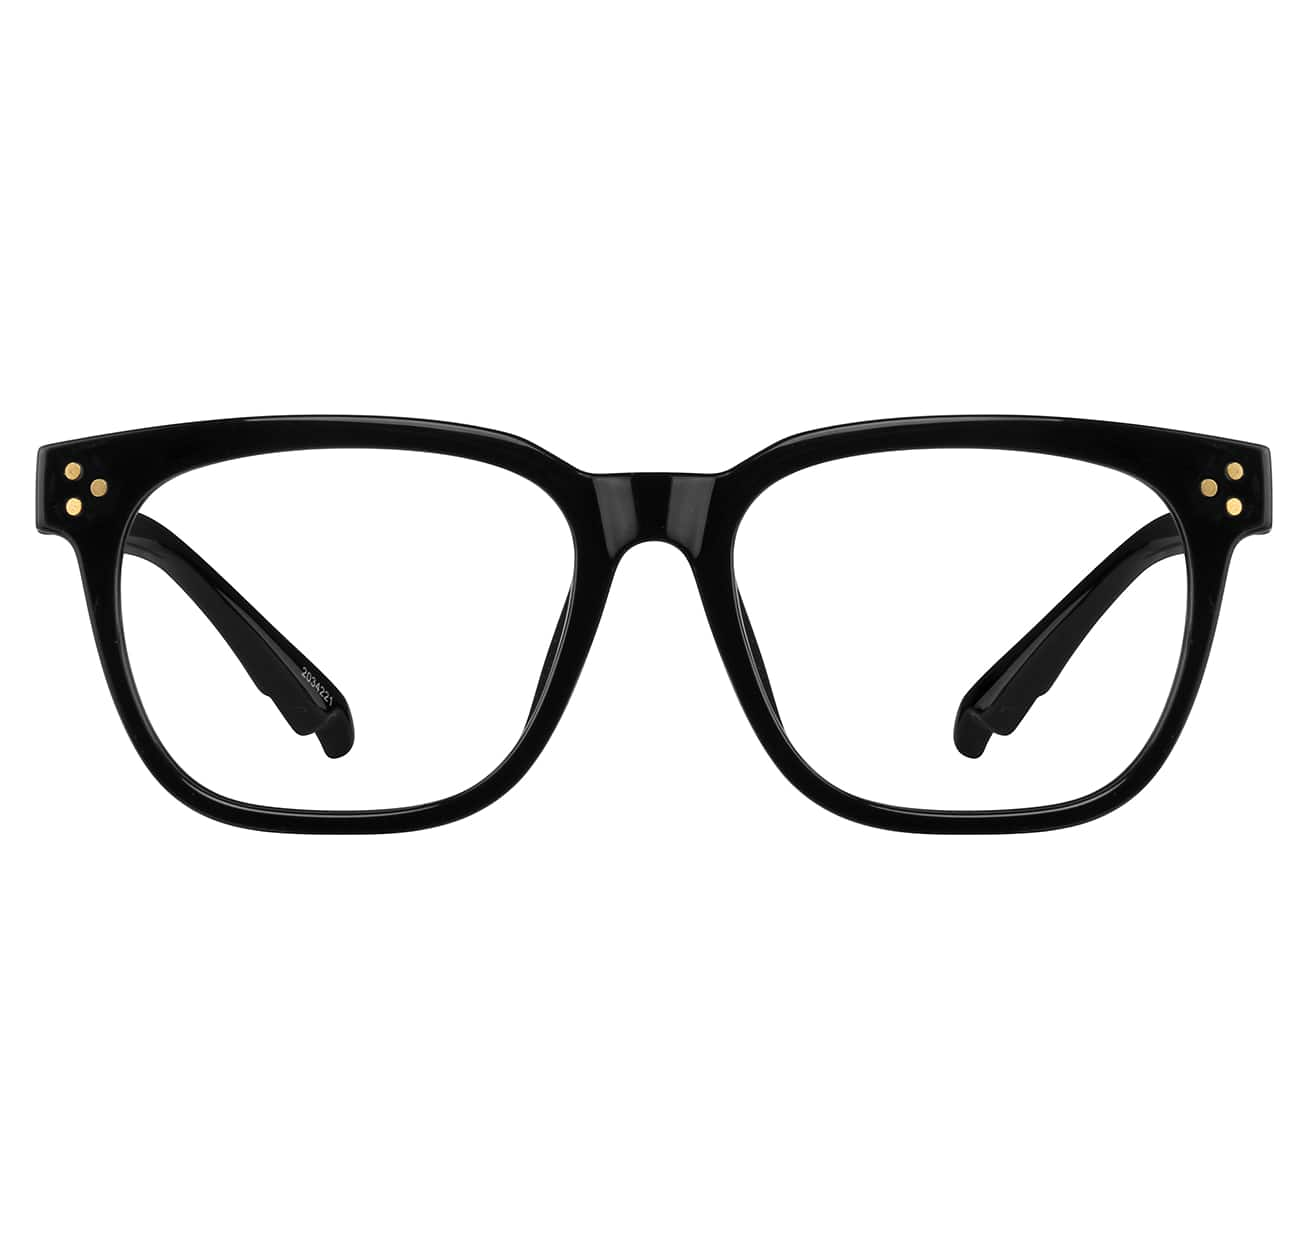 Image of Zenni black square glasses #2034121 I am grateful.